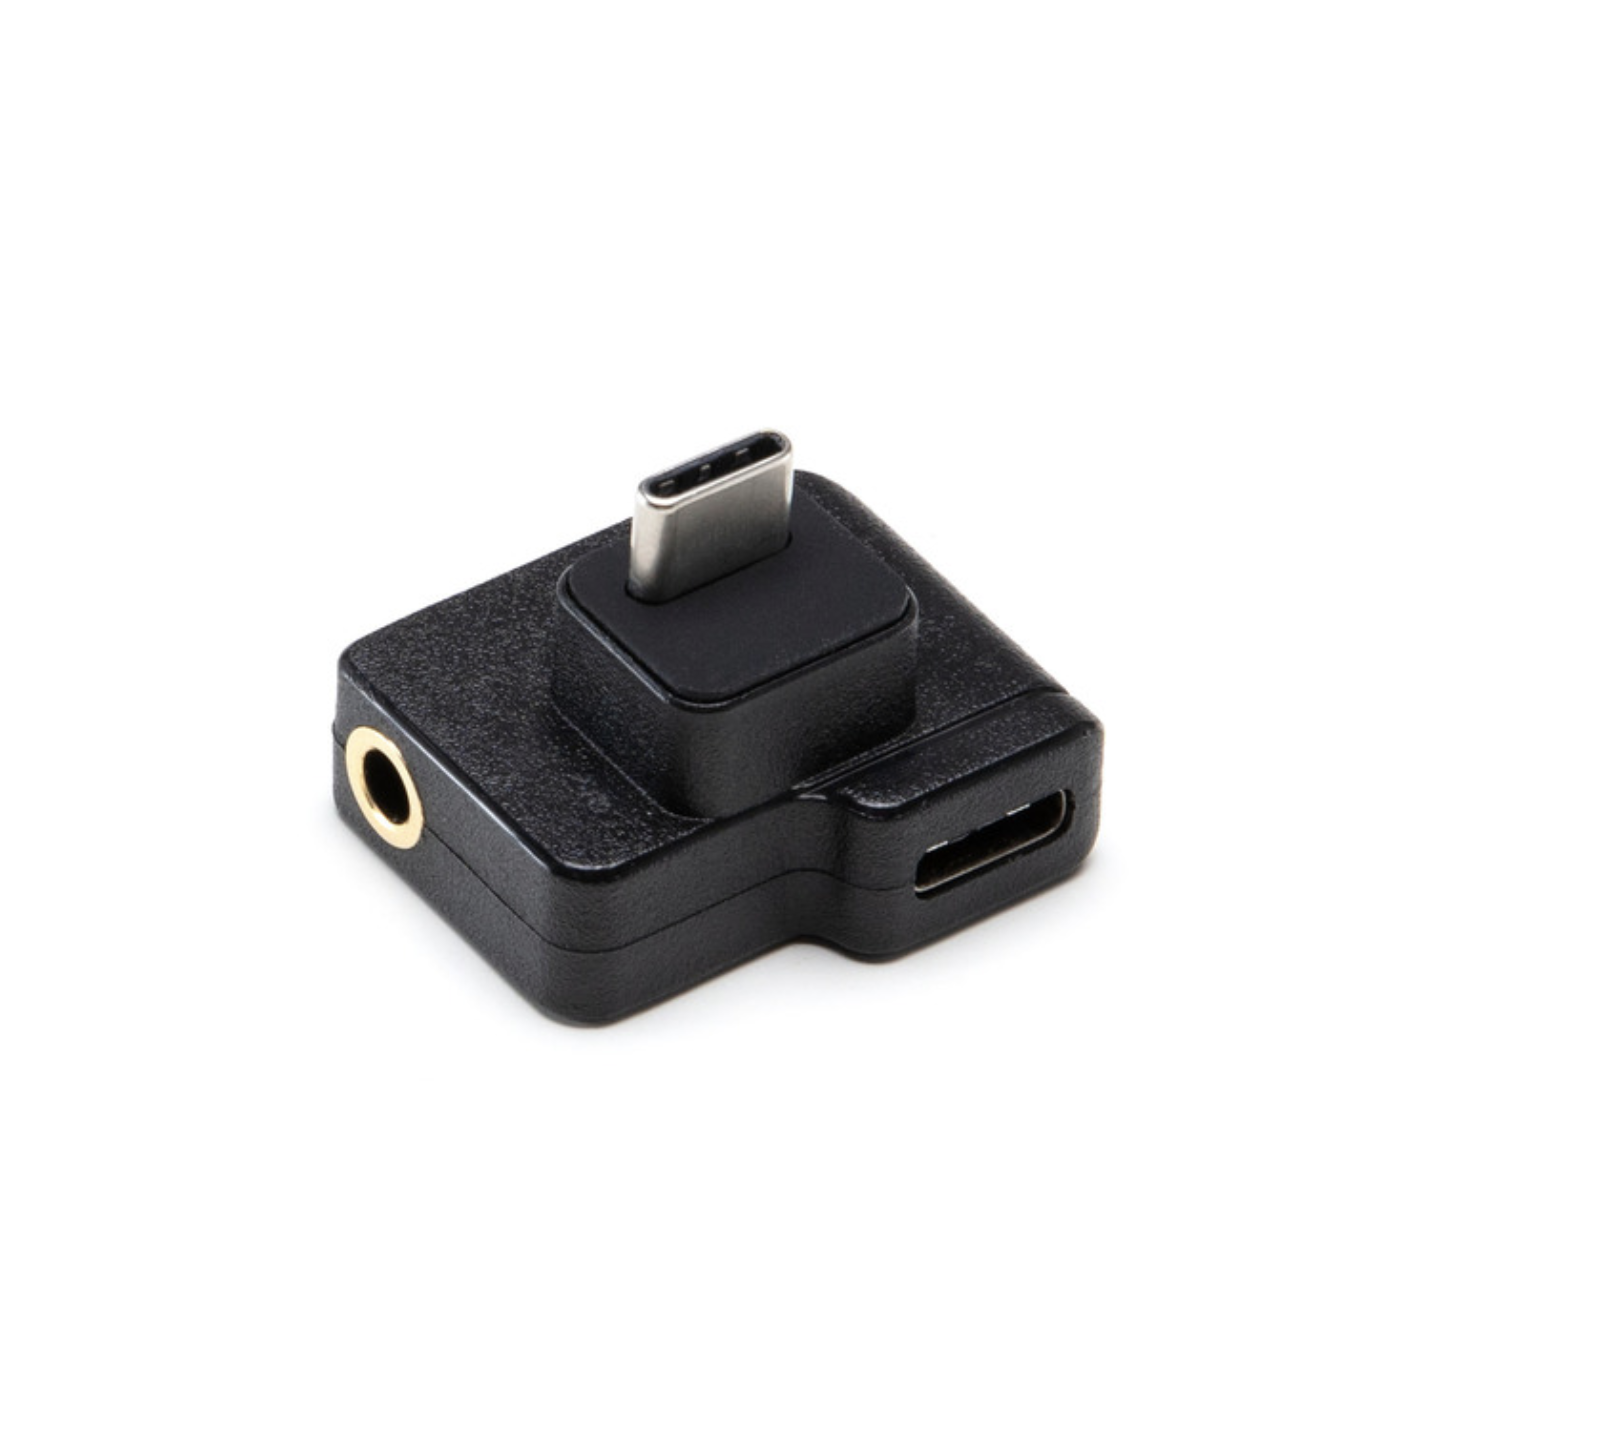 CYNOVA Osmo Action Dual 3.5mm/USB-C Adapter